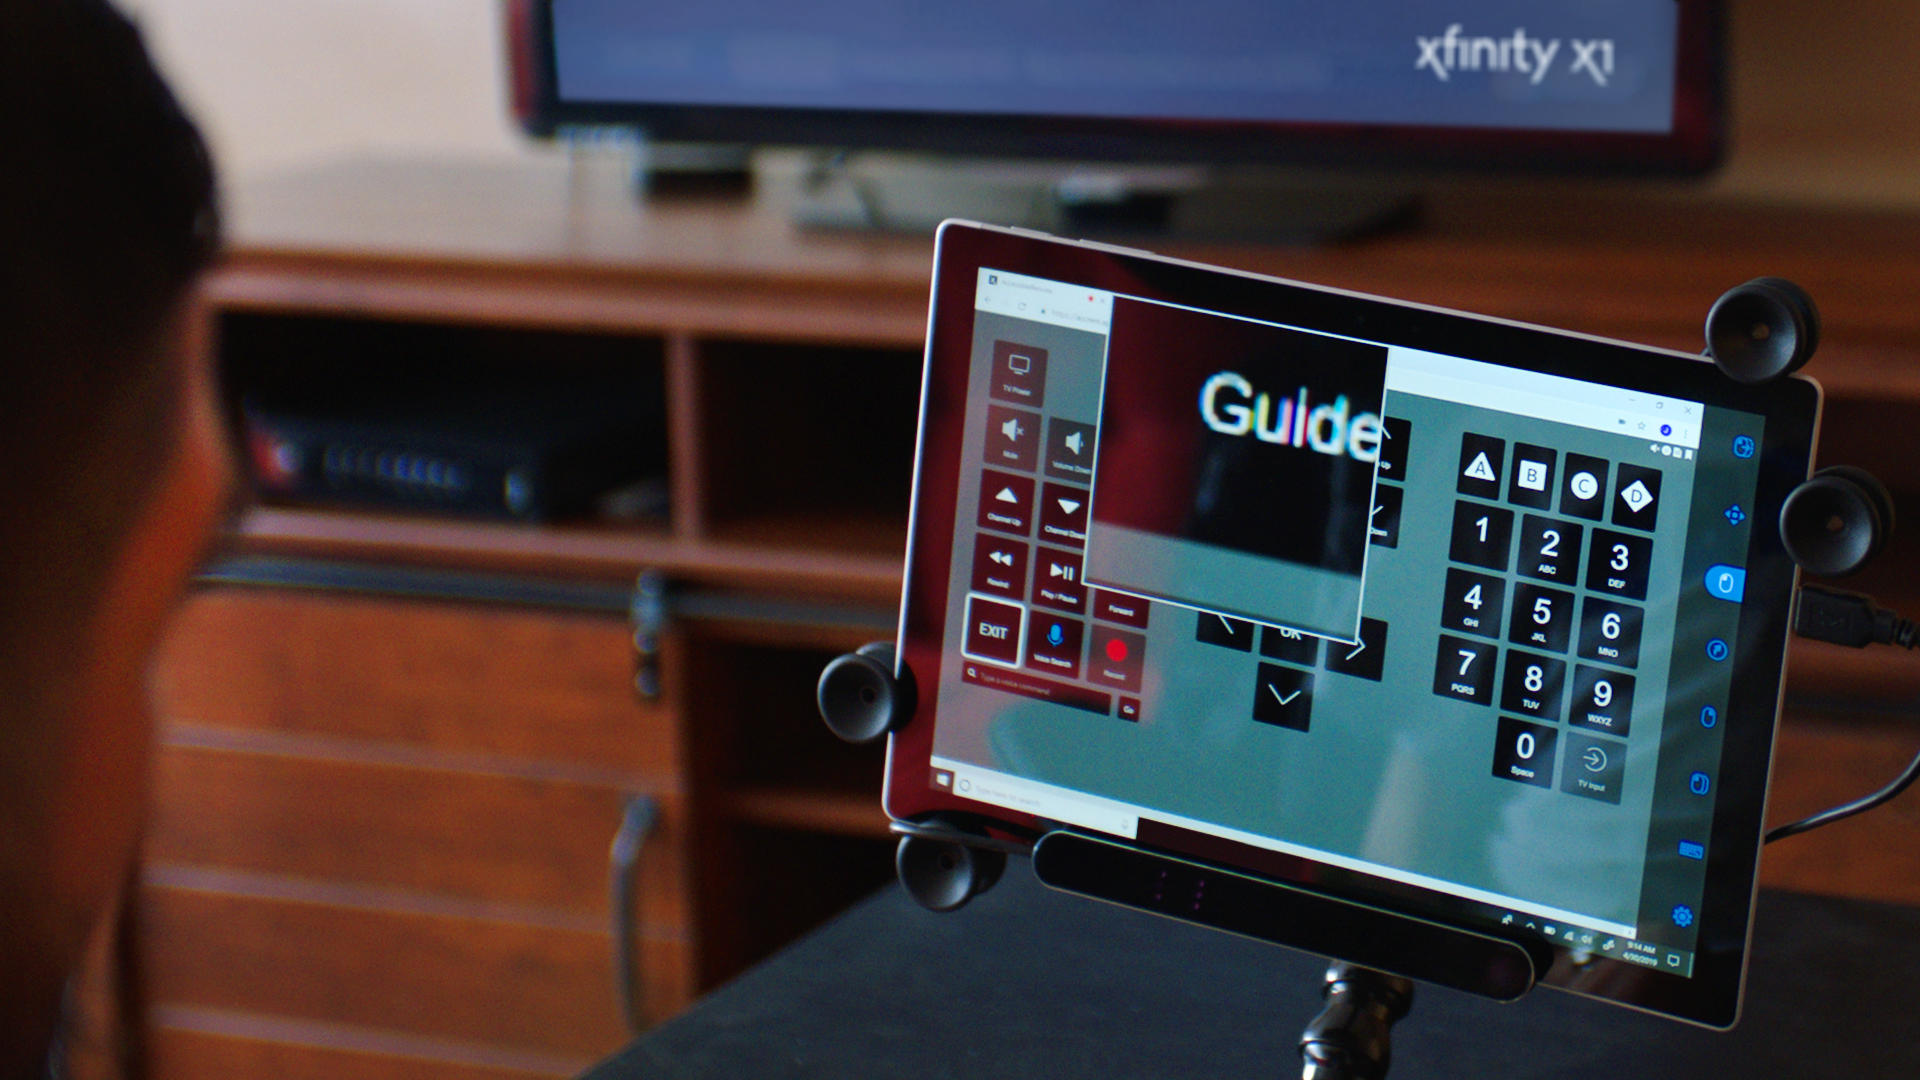 Comcast's Xfinity X1 eye control is a web-based remote that pairs with eye gaze systems.